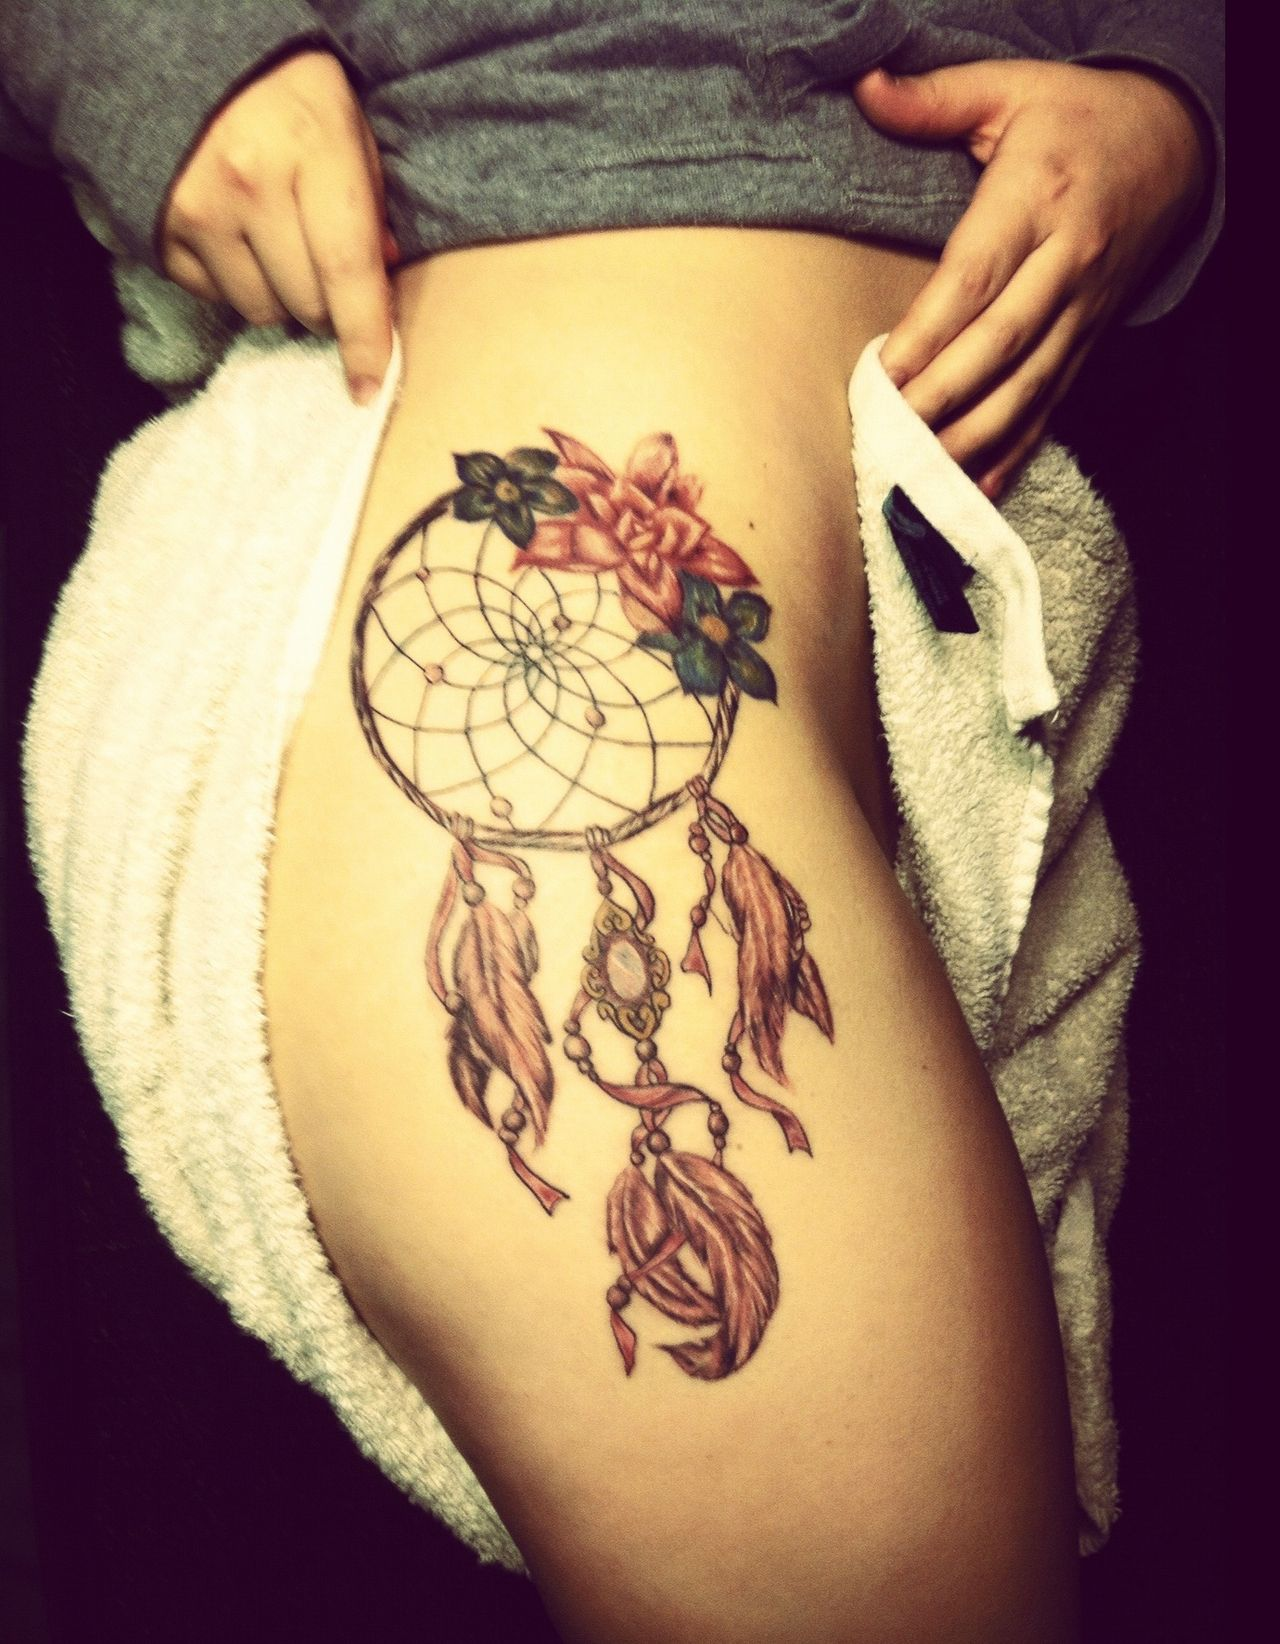 Dream Catcher Tattoo On Thigh Inspiration I Love This Dream Catcher Tattoo I Have One On My Shoulder Think I Design Decoration